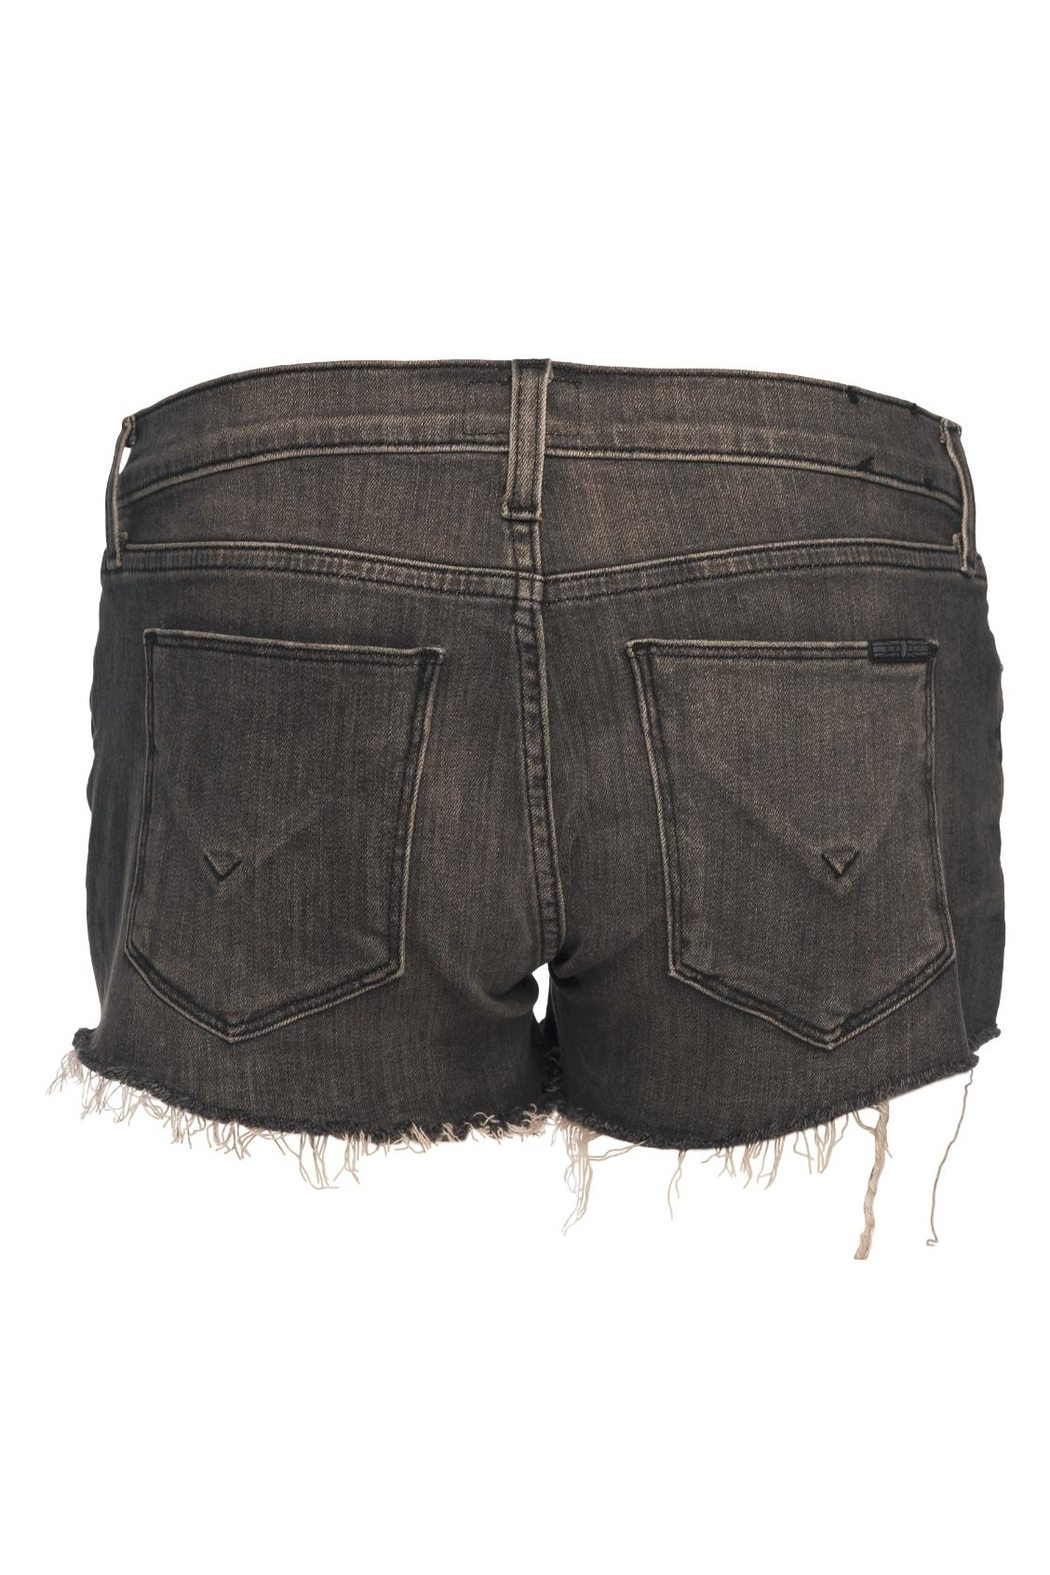 Hudson Jeans Kenzie Cut Off Shorts - Side Cropped Image